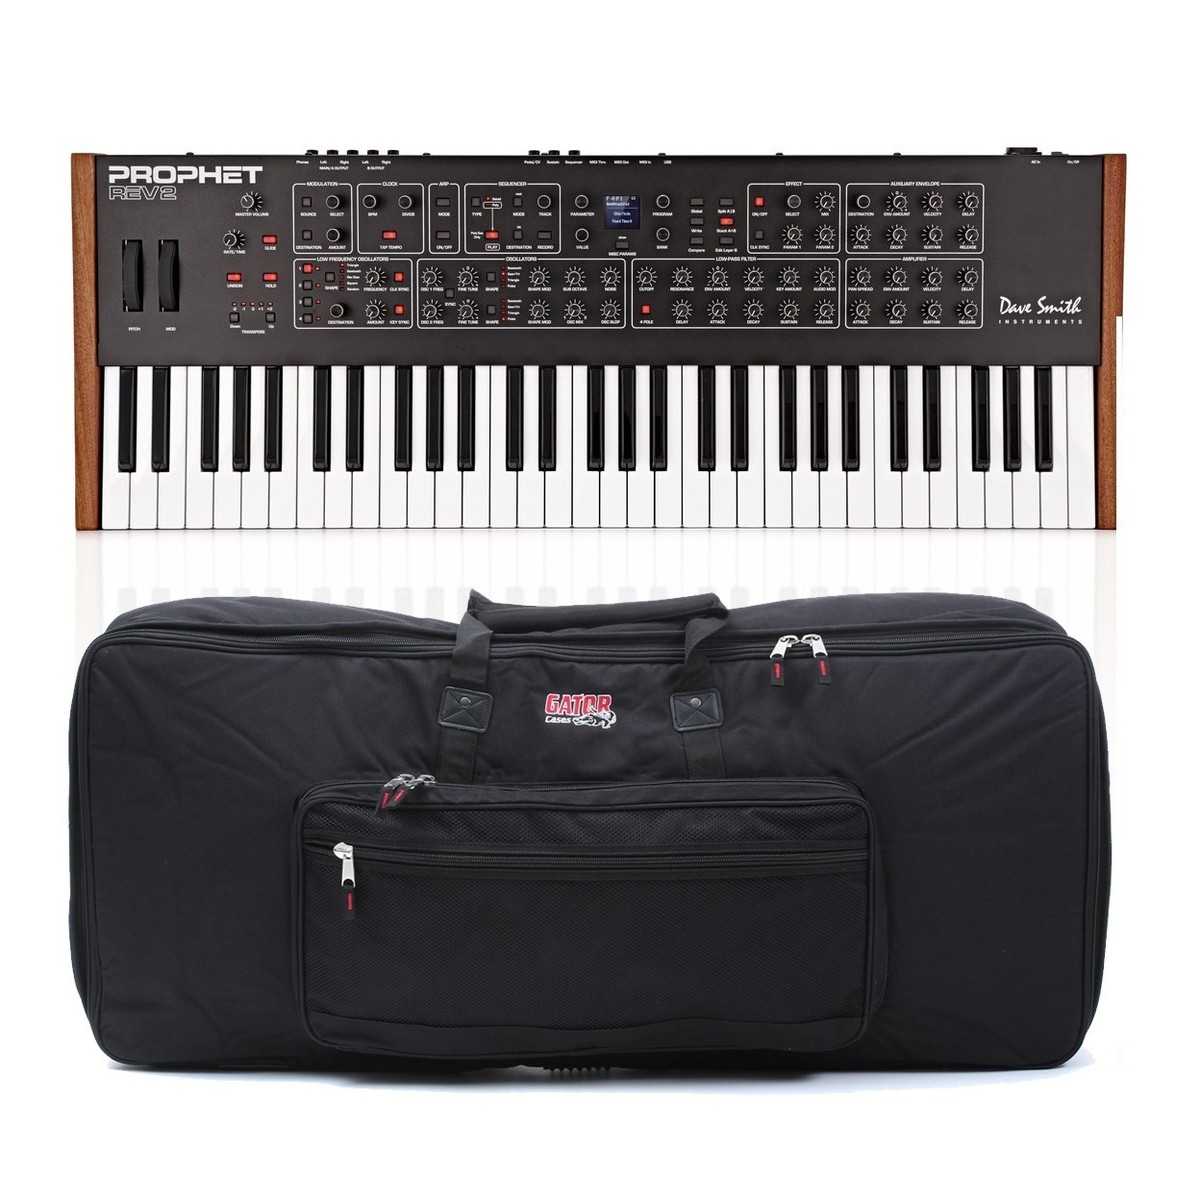 dave smith instruments prophet rev2 8 voice analog poly synth case at gear4music. Black Bedroom Furniture Sets. Home Design Ideas